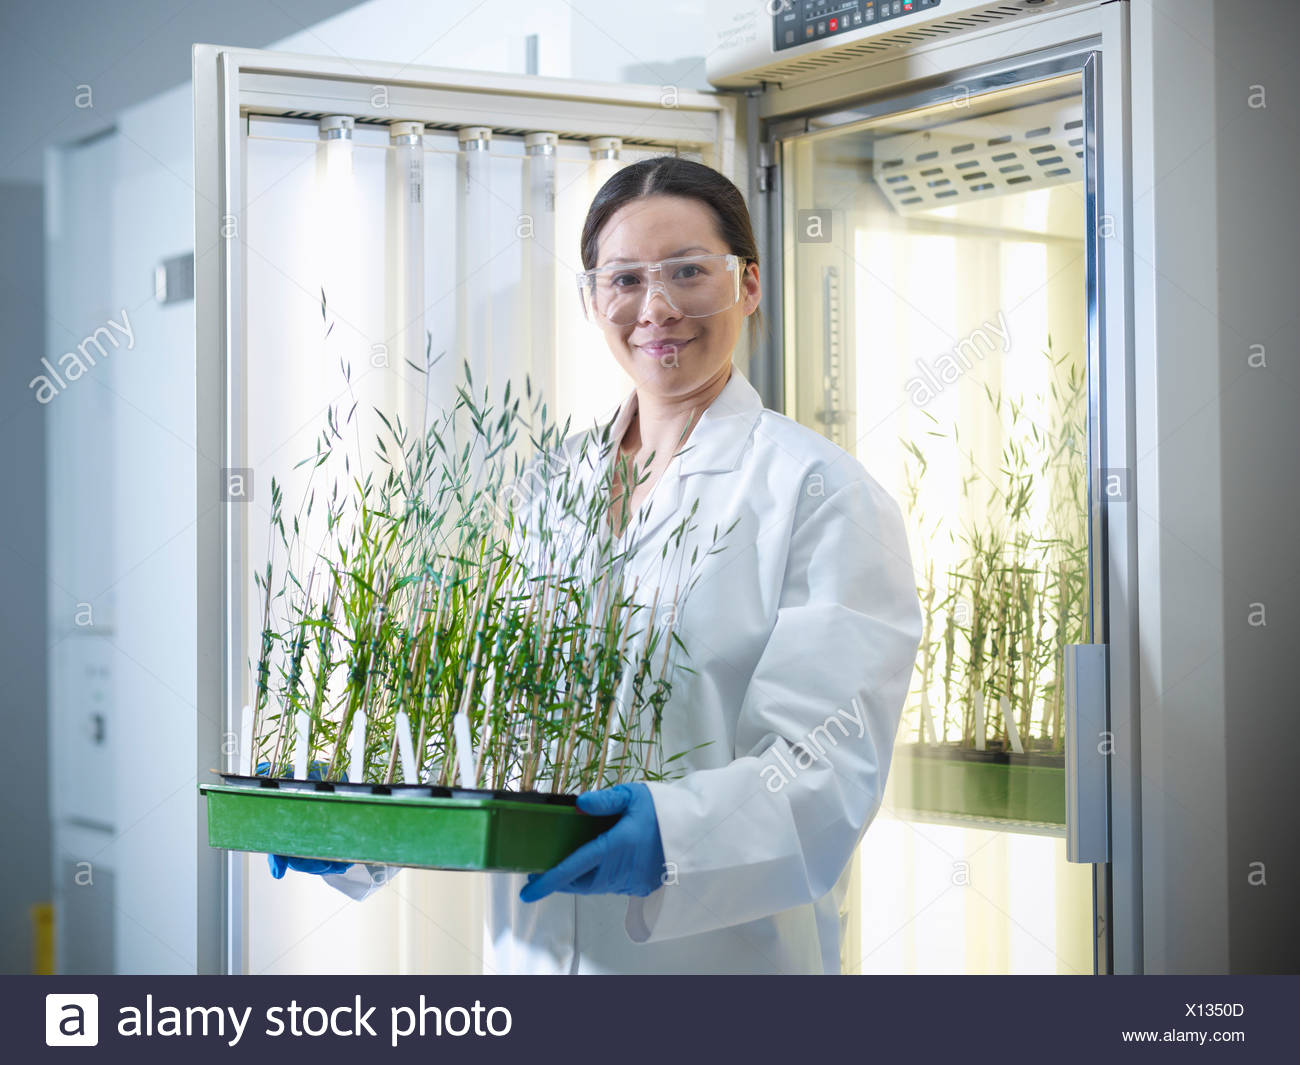 Scientist carrying potted plants in lab - Stock Image